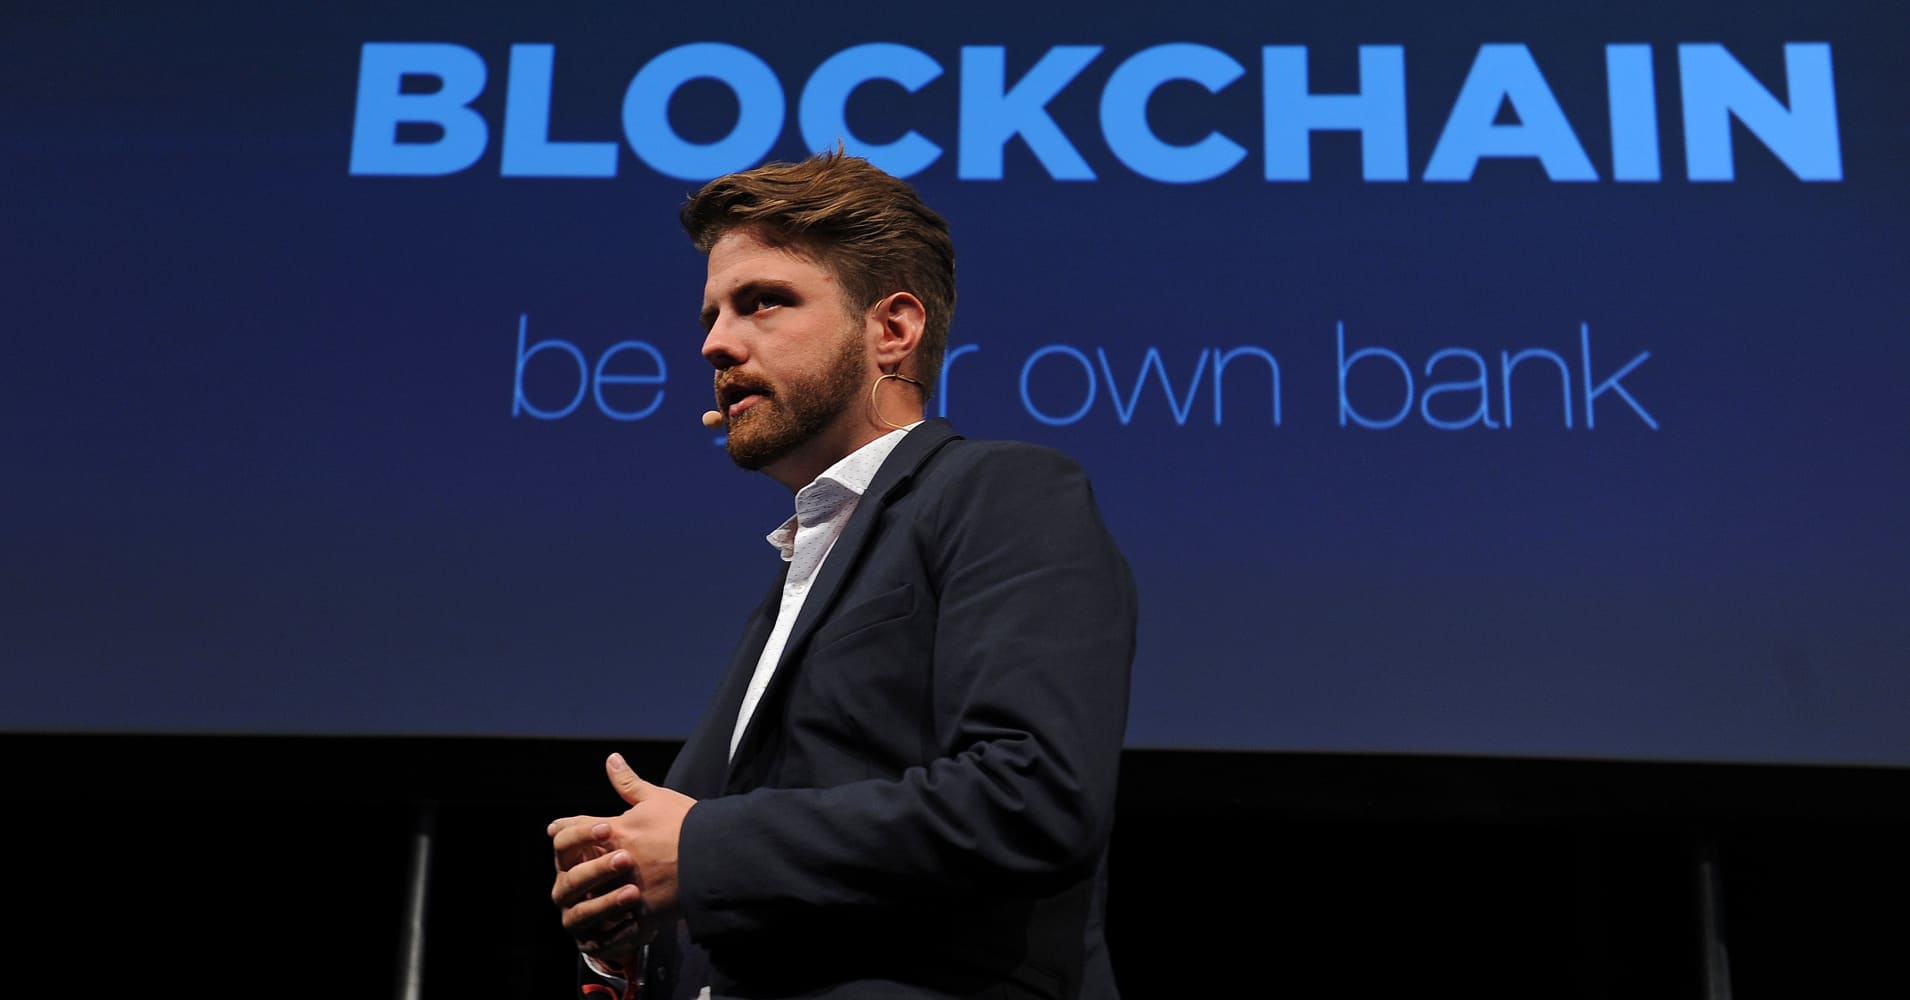 Bitcoin wallet start-up Blockchain raises $40 million from Google